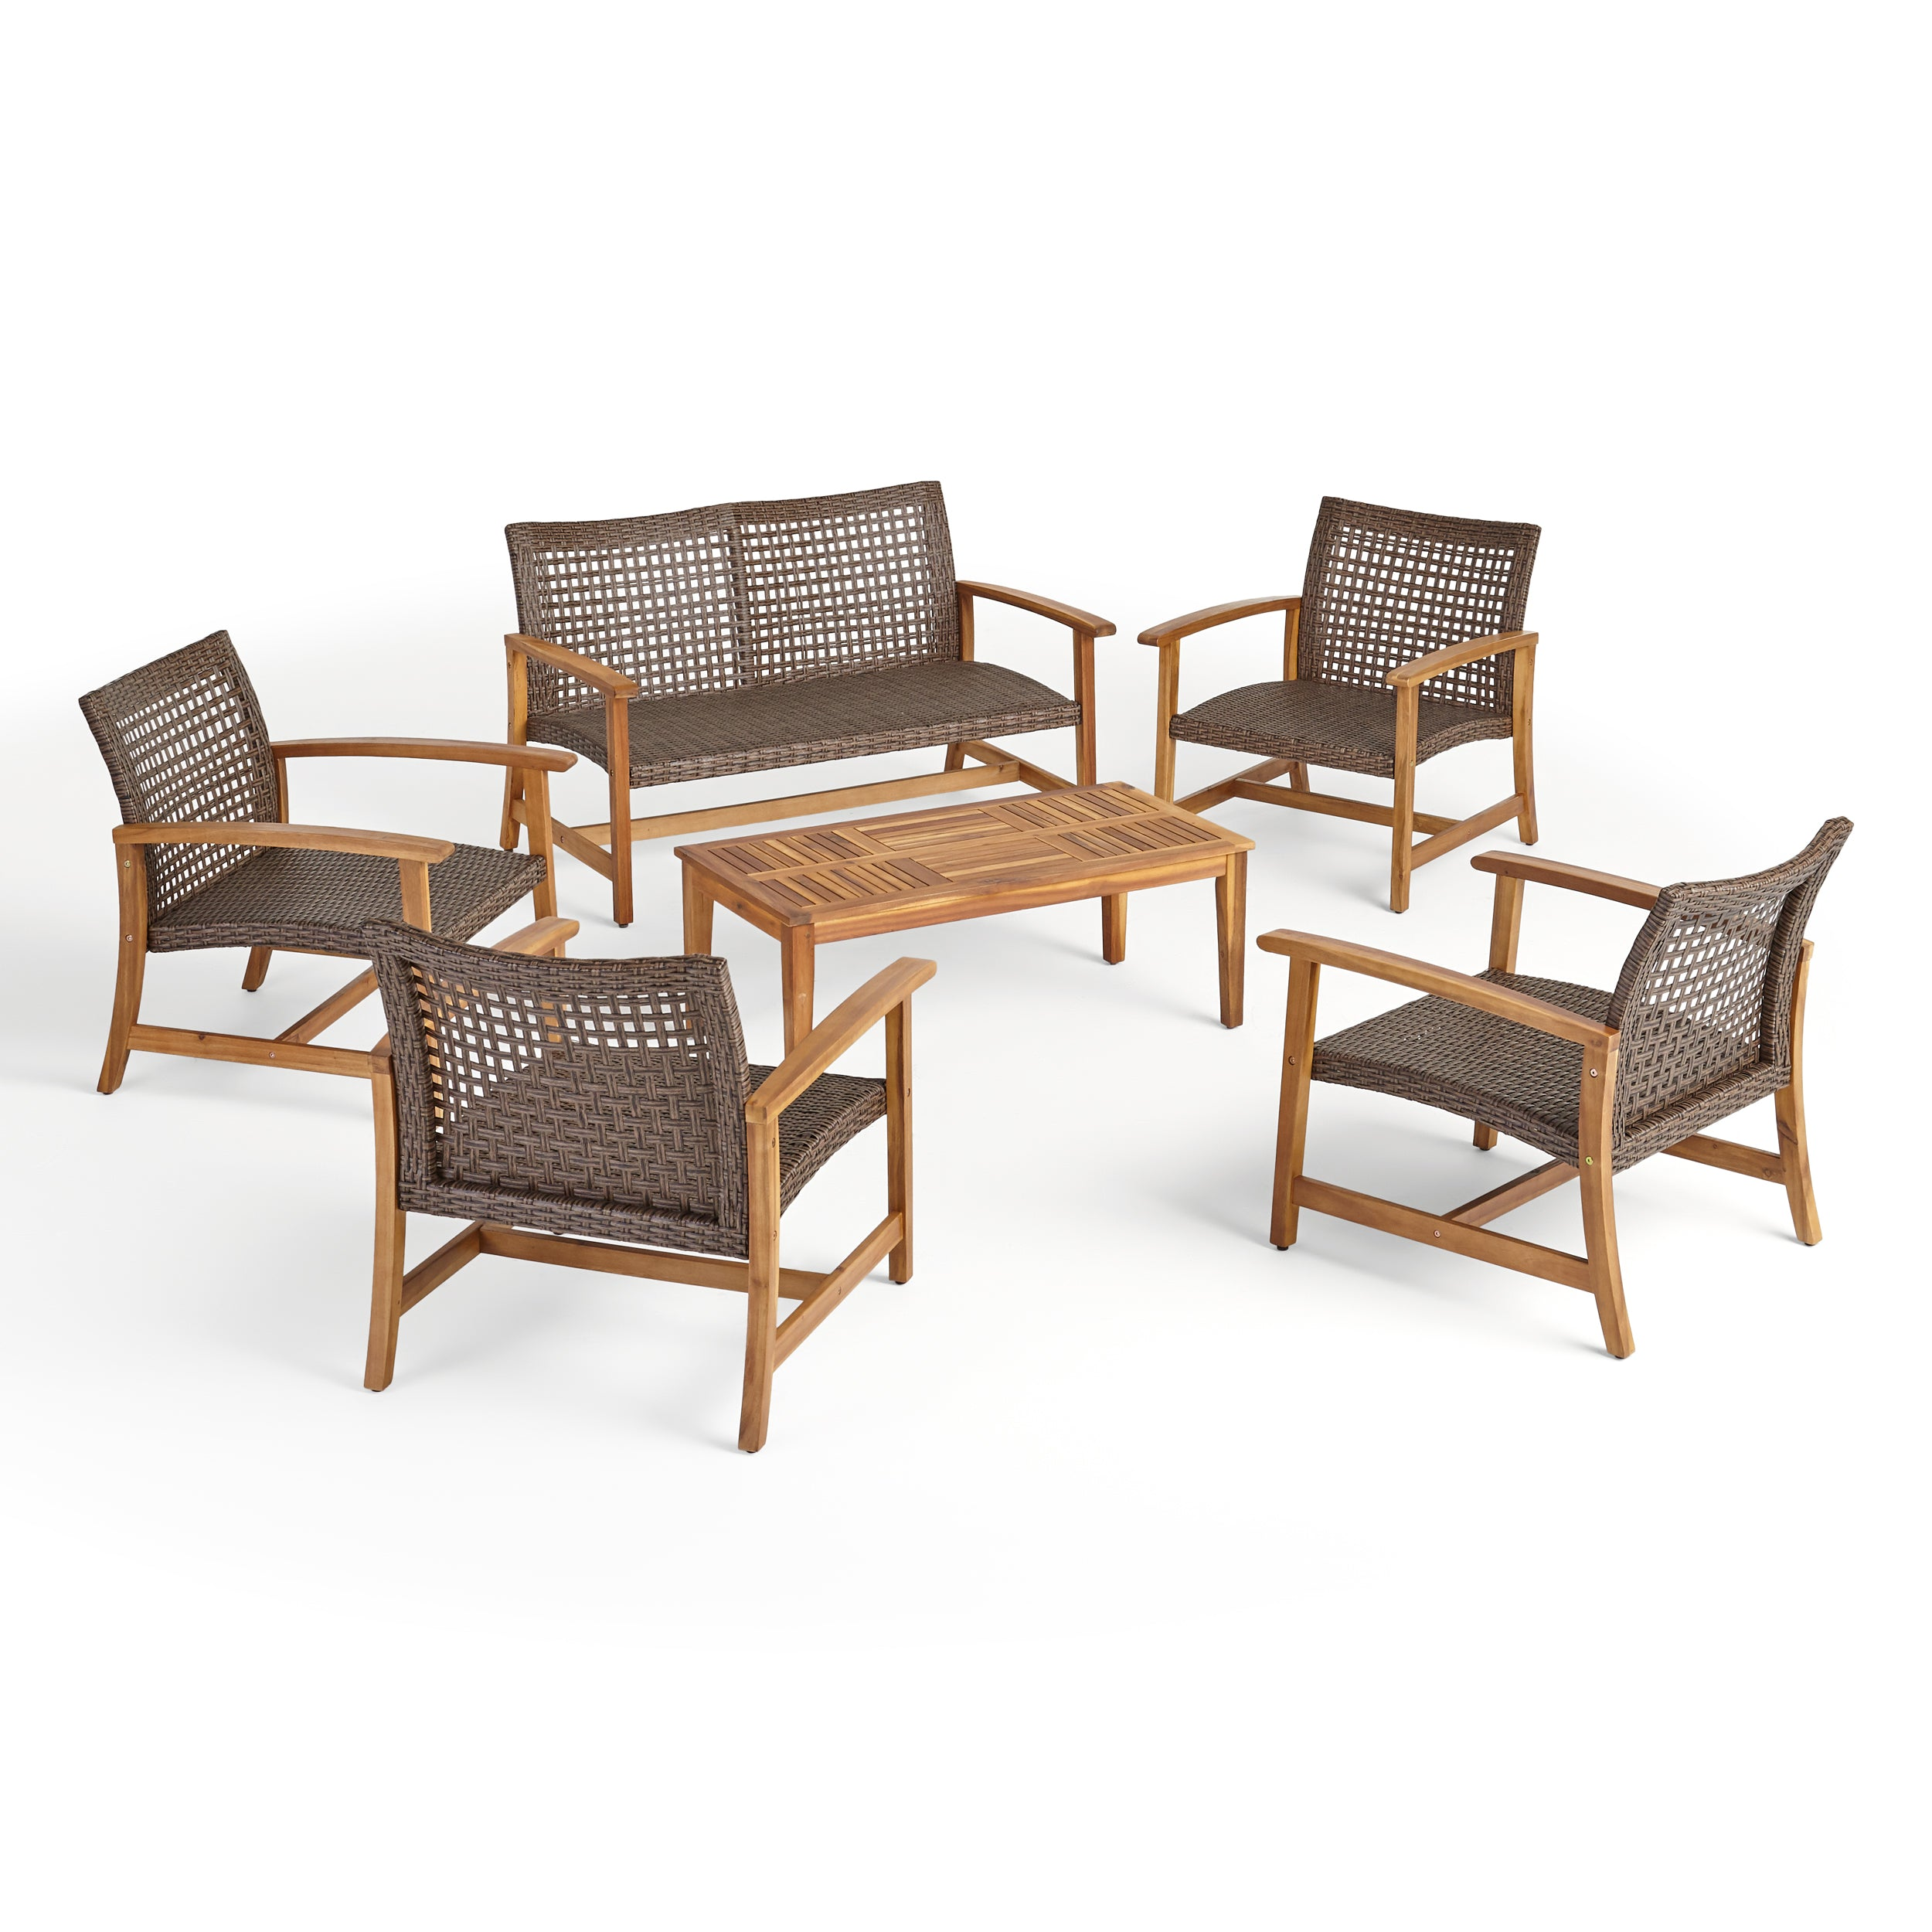 Alyssa Outdoor 6 Piece Wood and Wicker Chat Set Mixed Black Light Gray Washed Finish